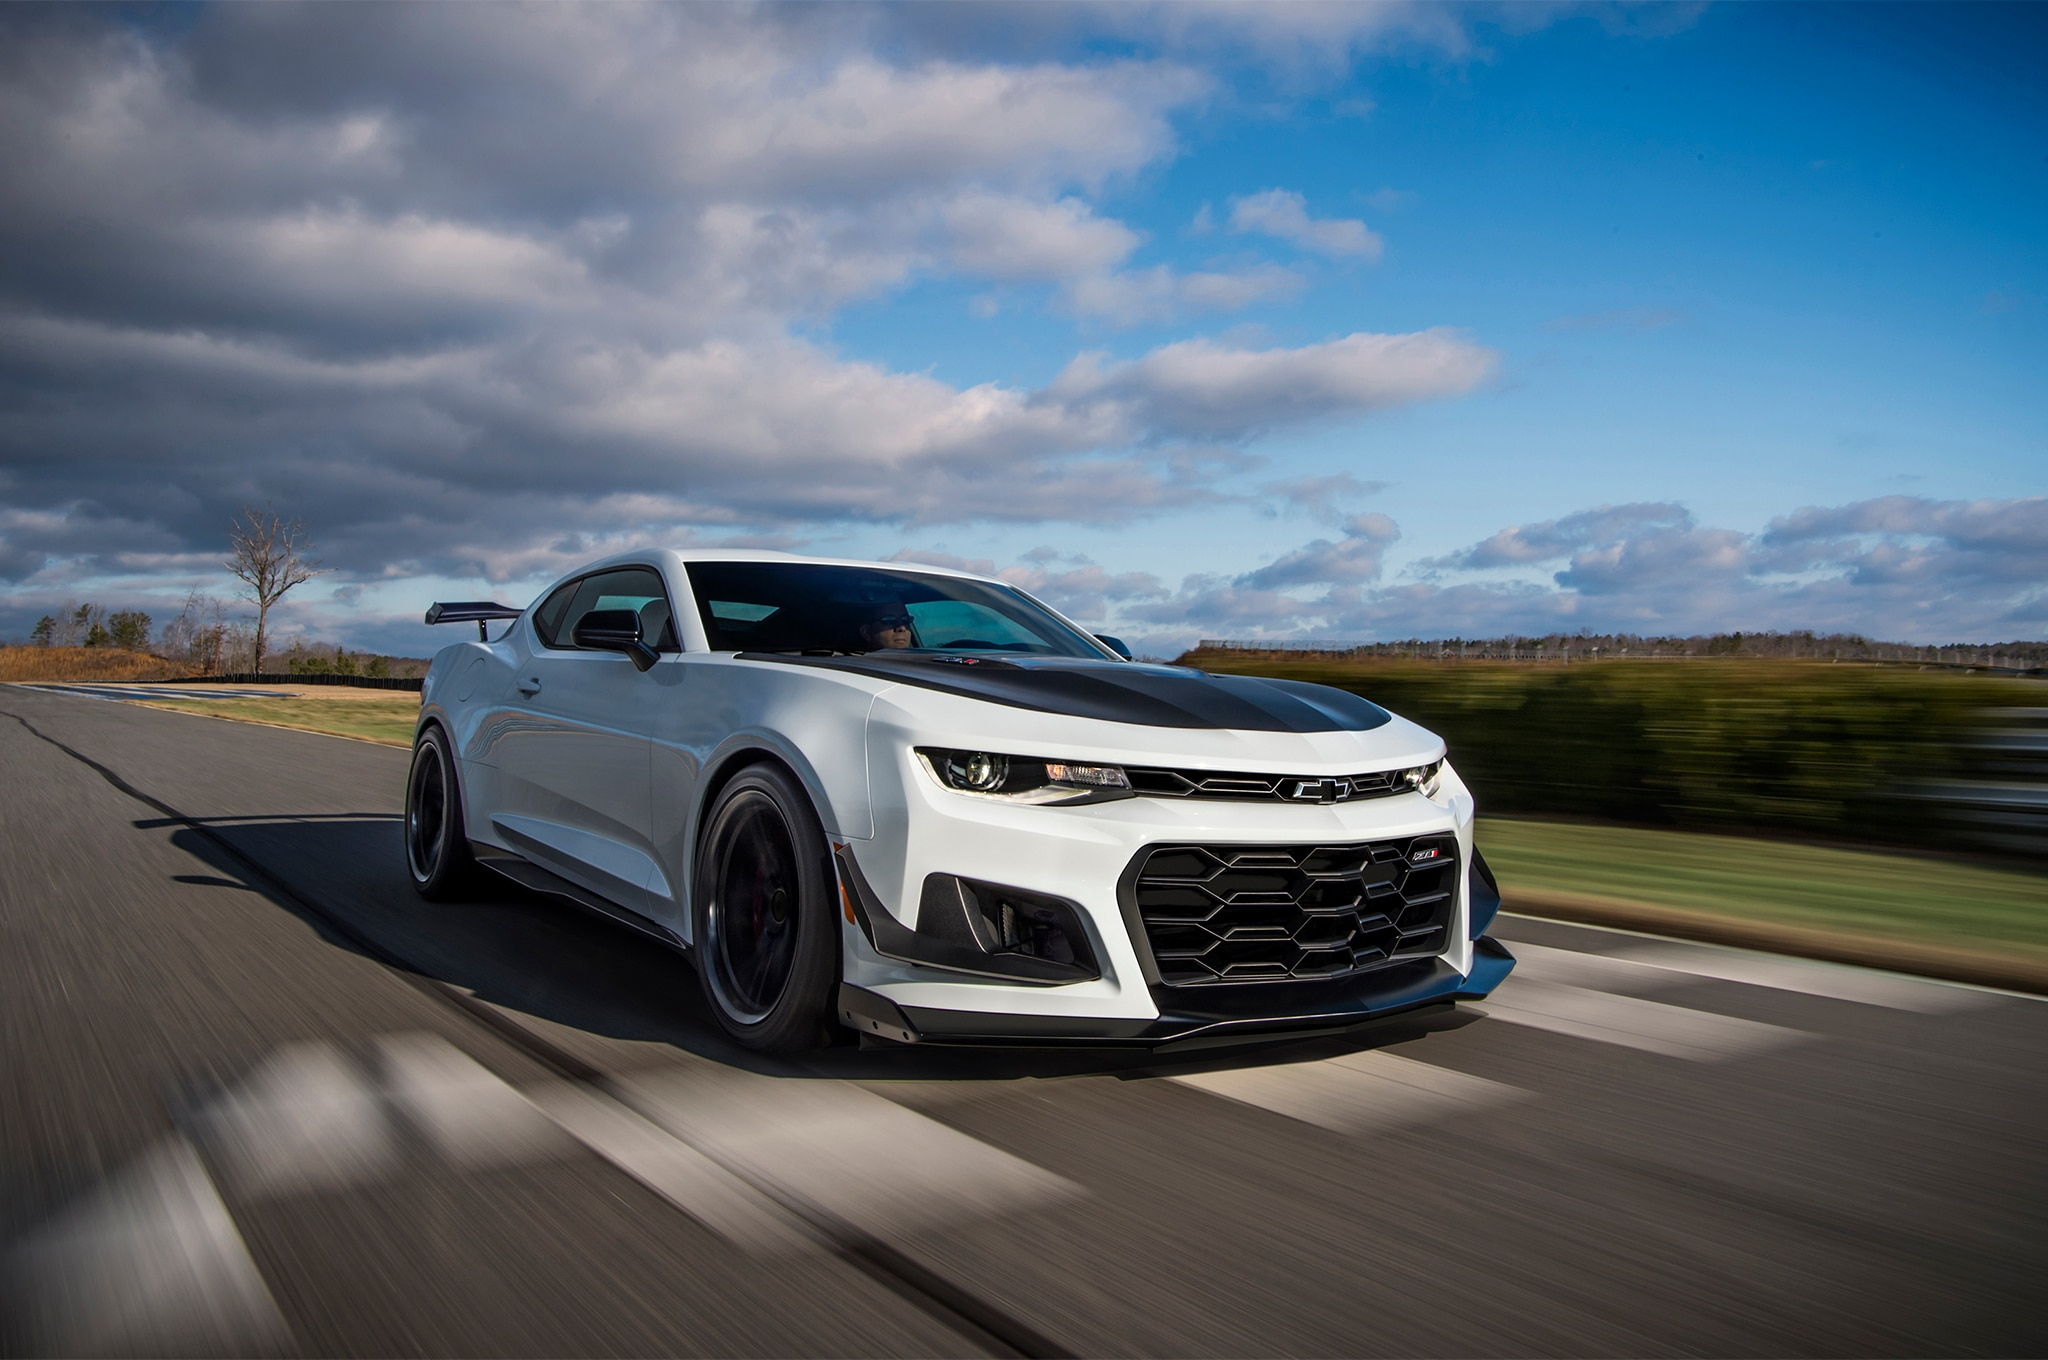 2018 Chevrolet Camaro ZL1 1LE Front Three Quarter In Motion 03 1